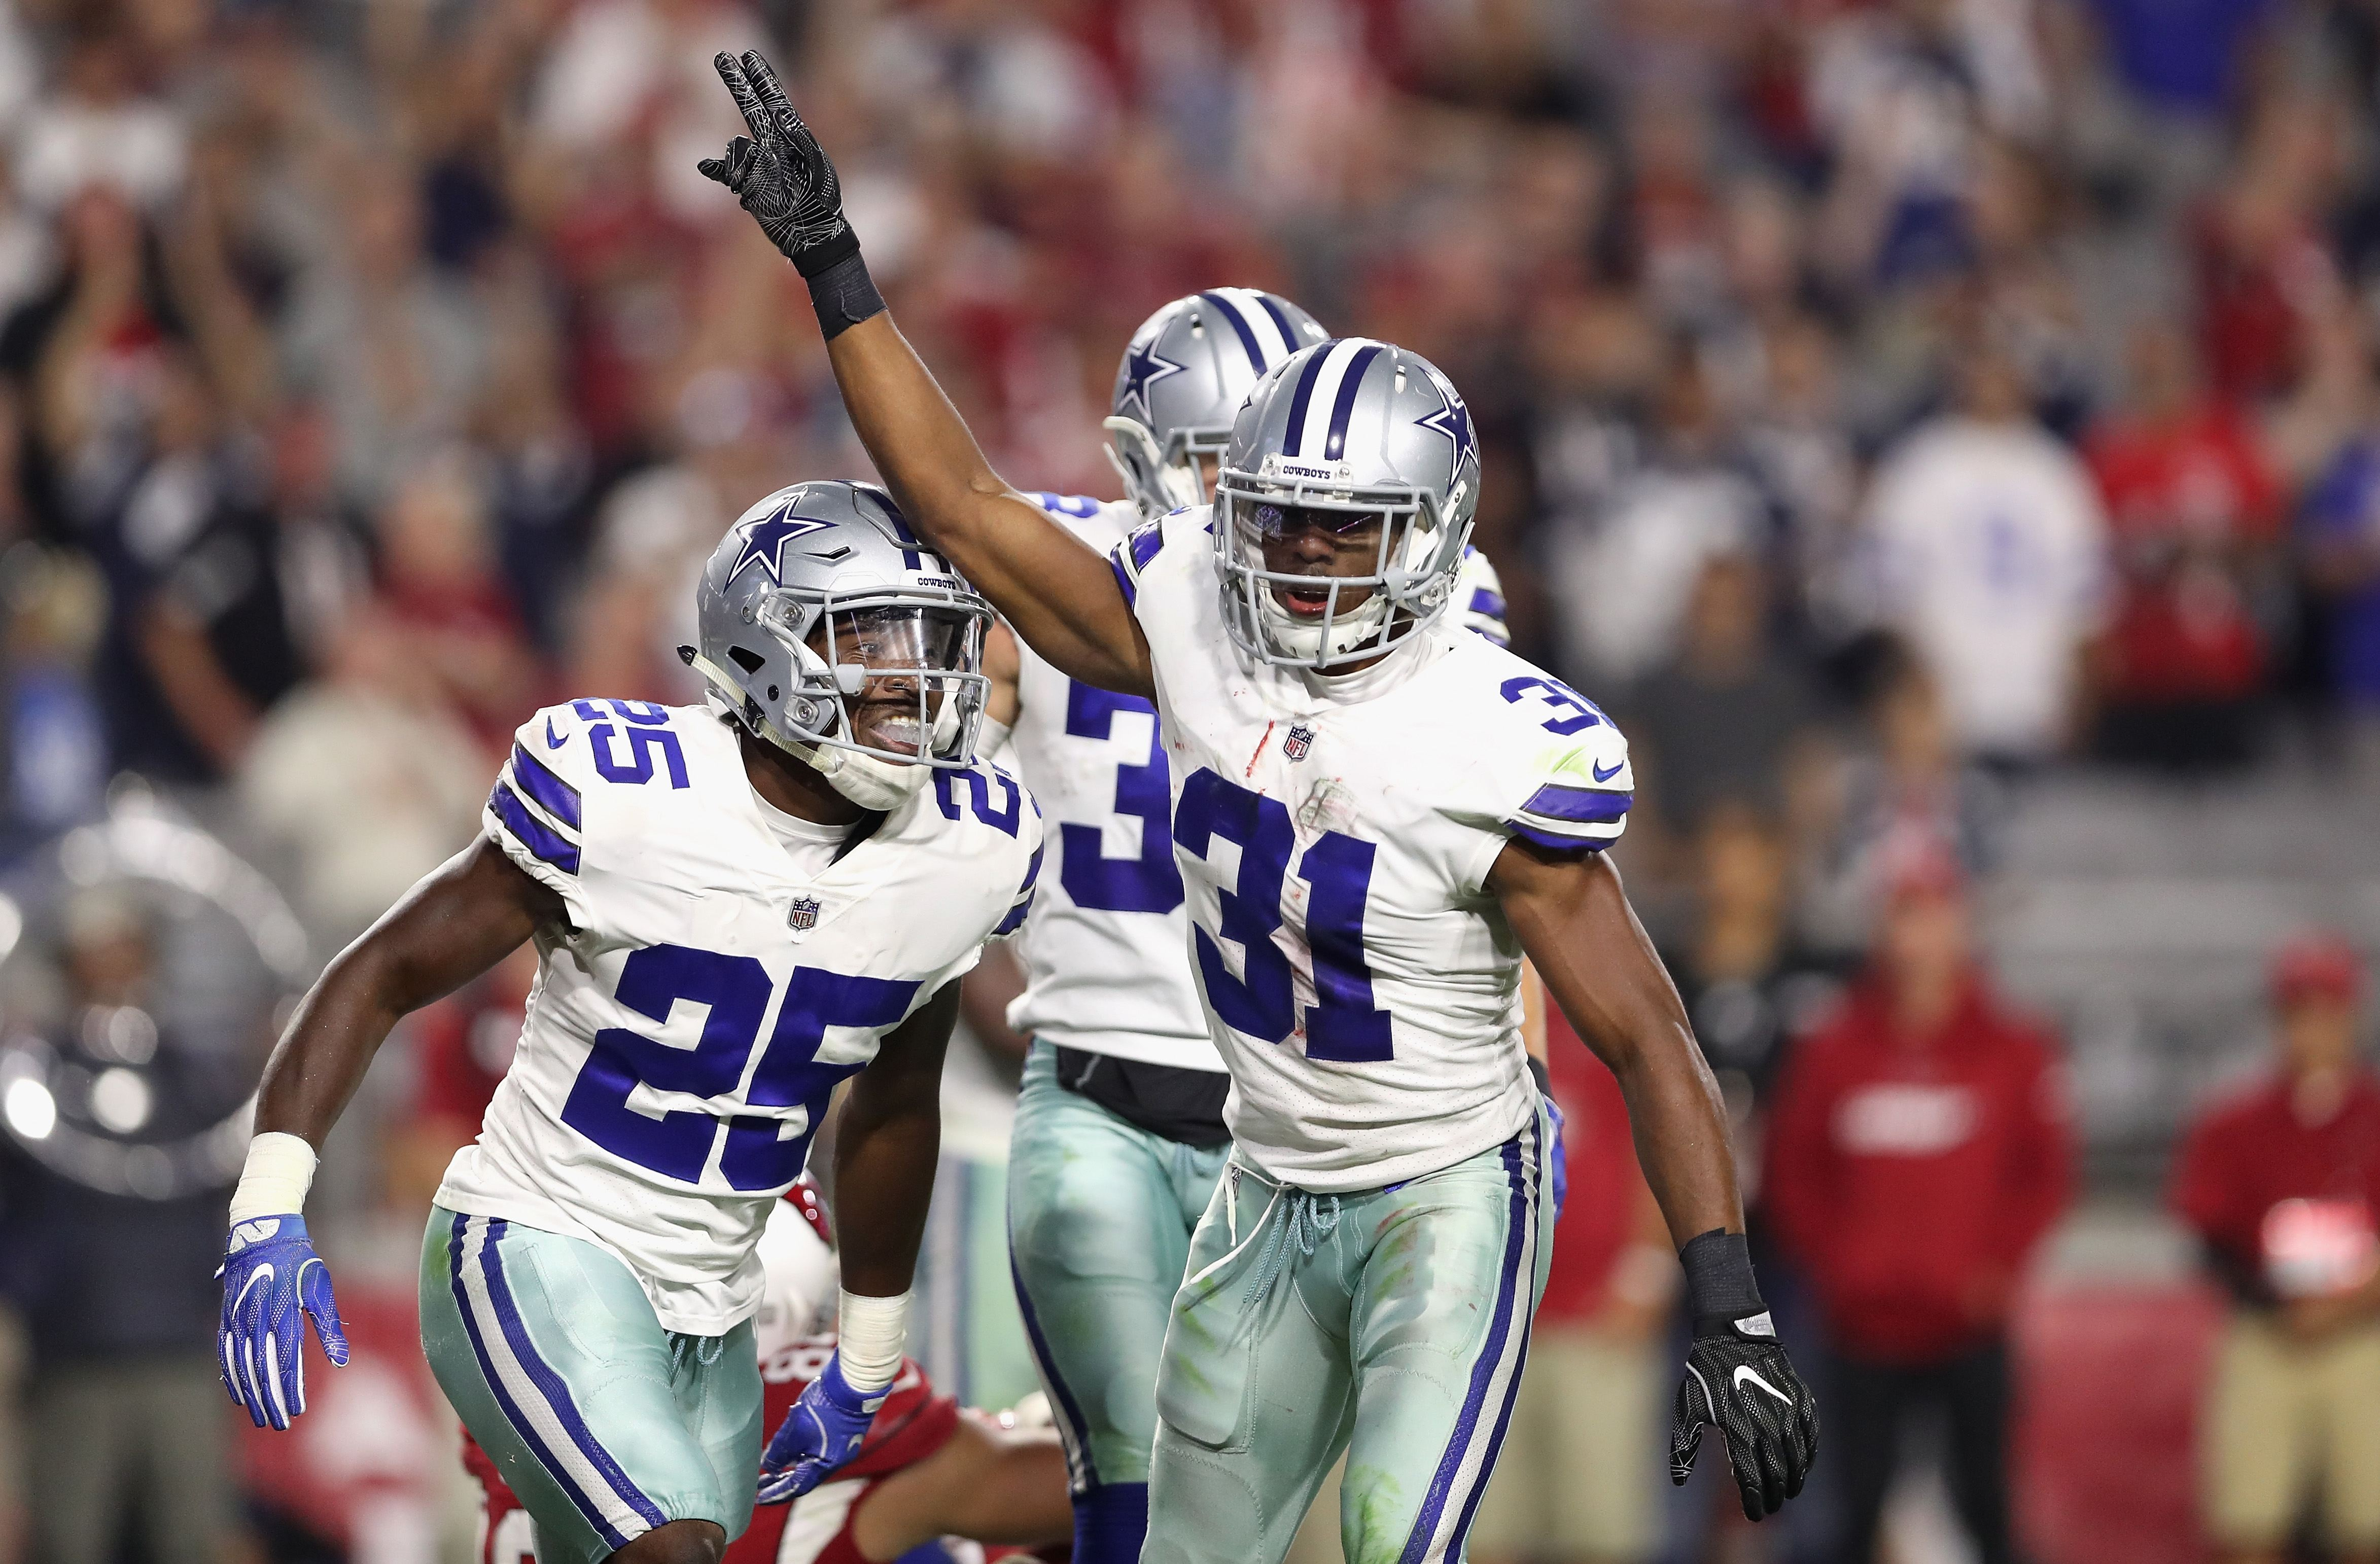 Shanecarter_dallas-cowboys_bottom-line-are-the-cowboys-better-or-worse-for-2018